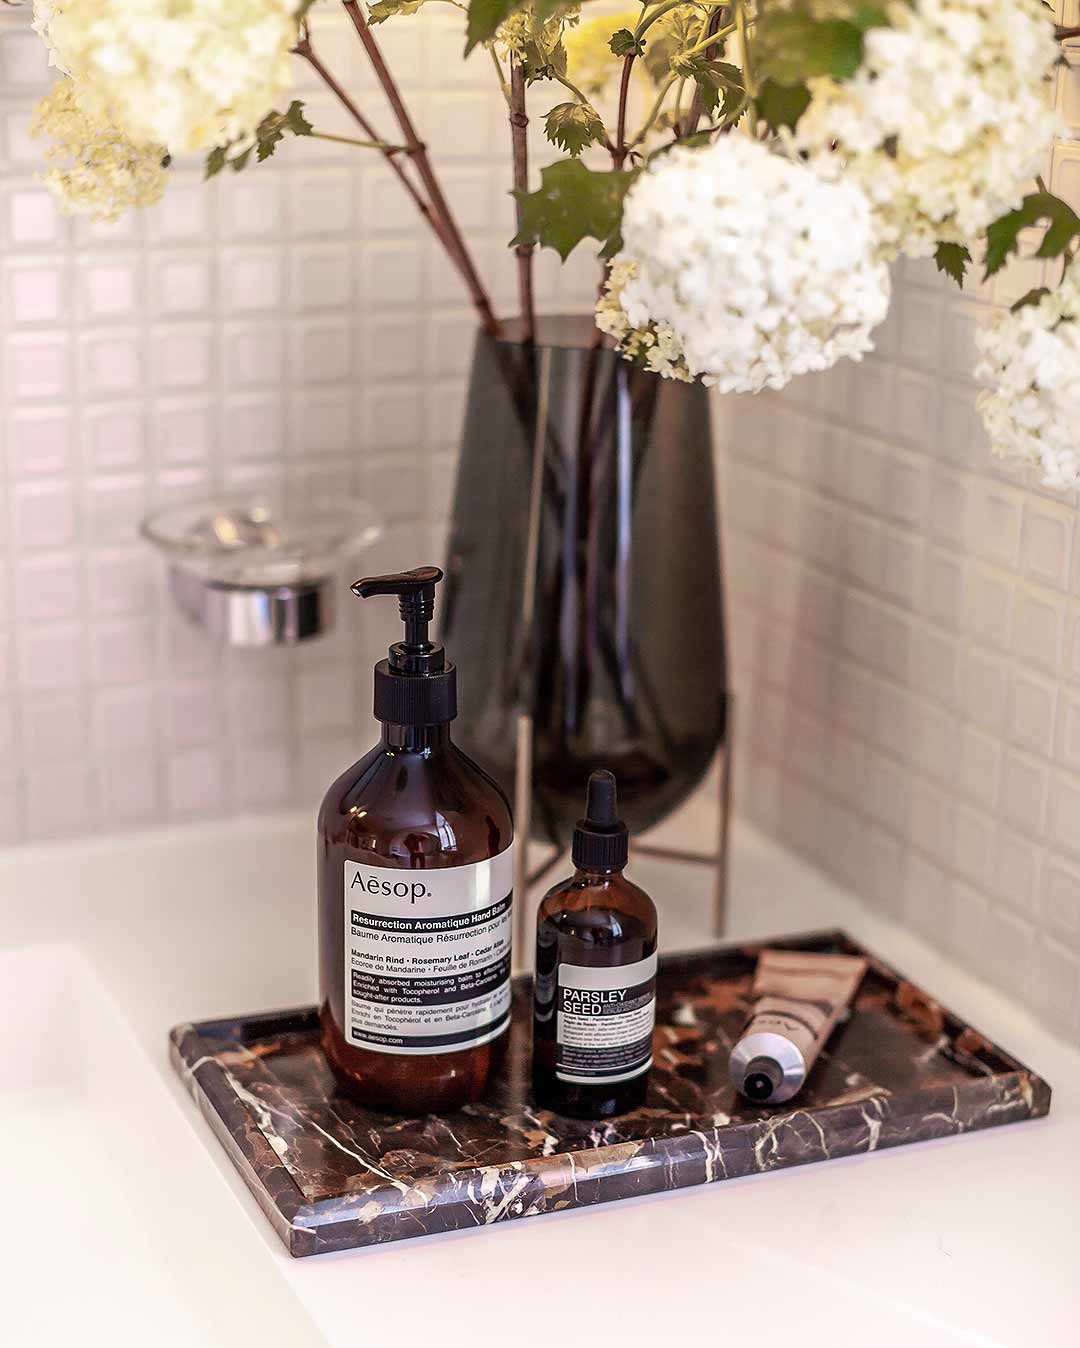 All about my AESOP skincare shelf / parsleyseed / interior by Katarina Fischer - Editionnoire.com